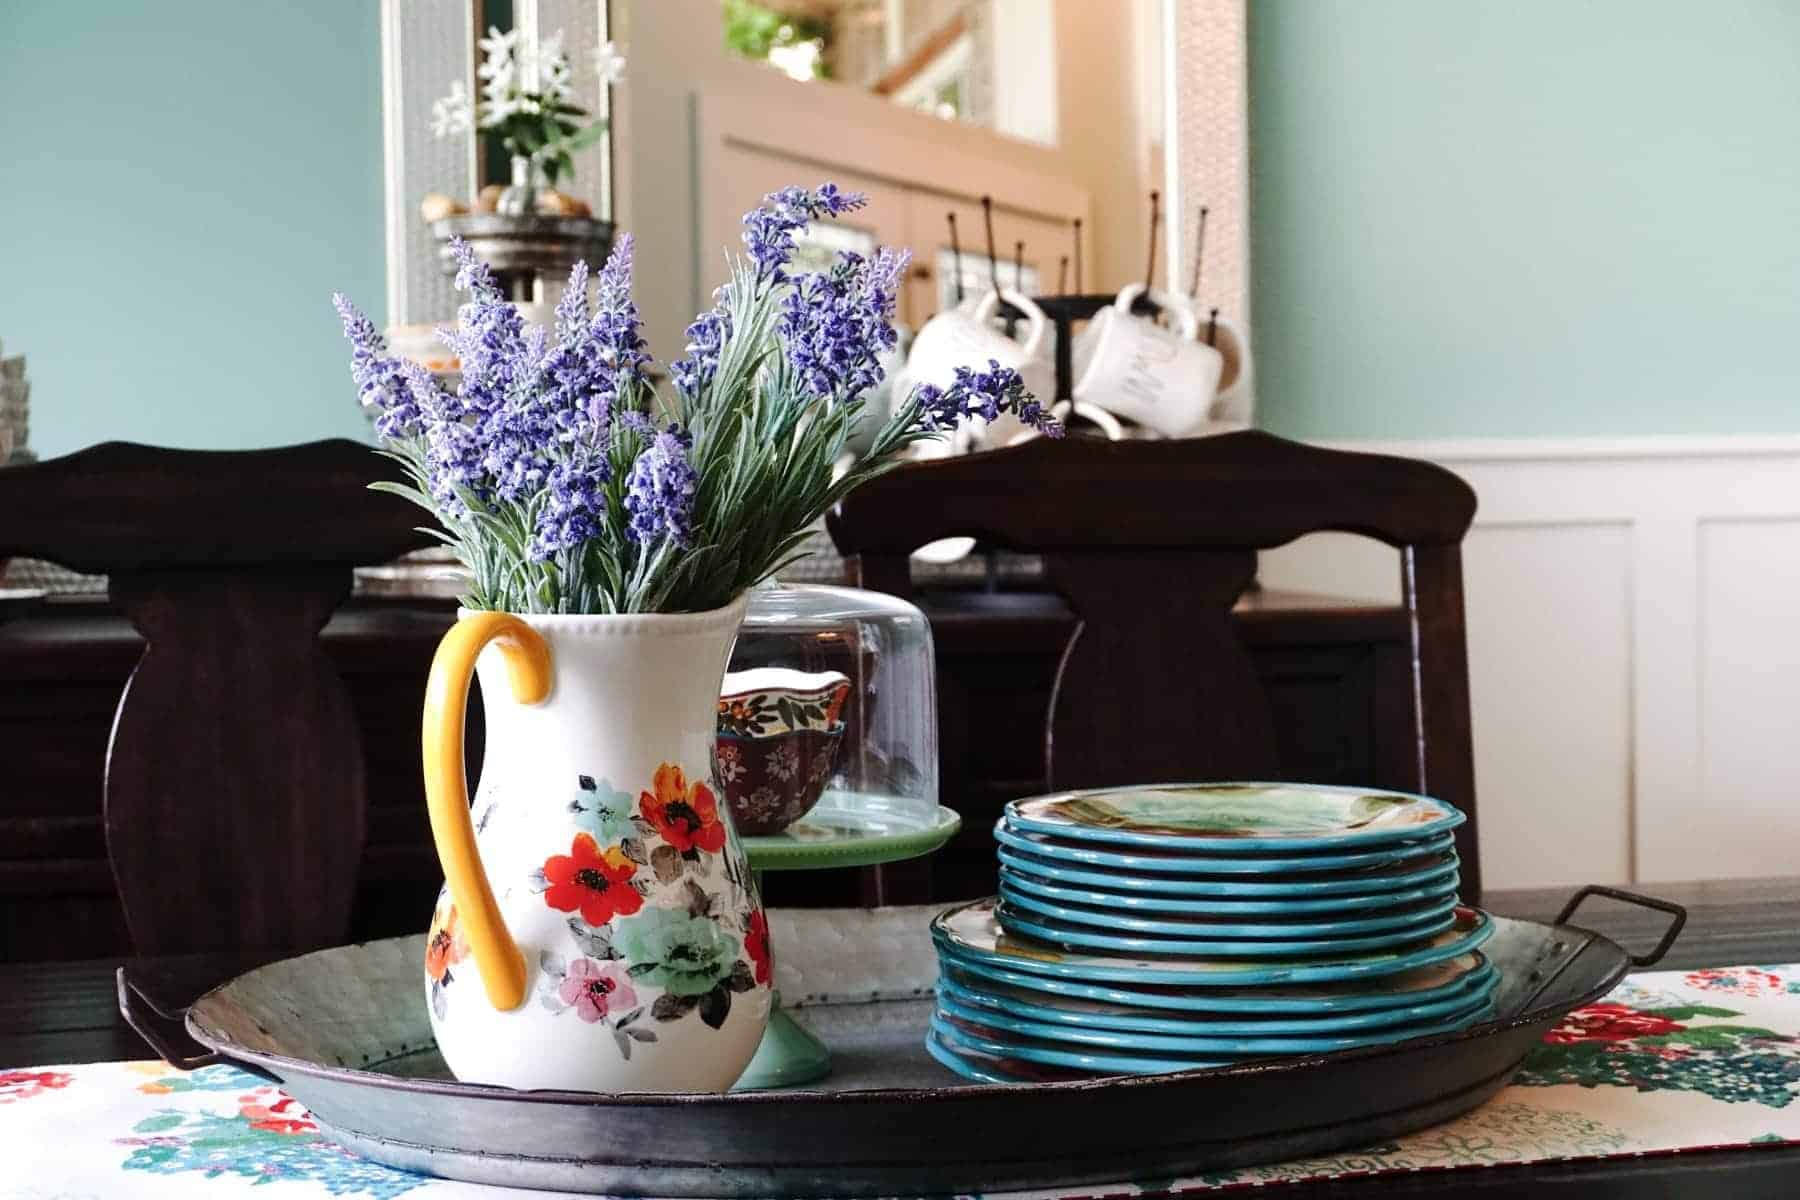 A Table Centerpiece Adorned With Lavender Flowers And Pioneer Woman Plates